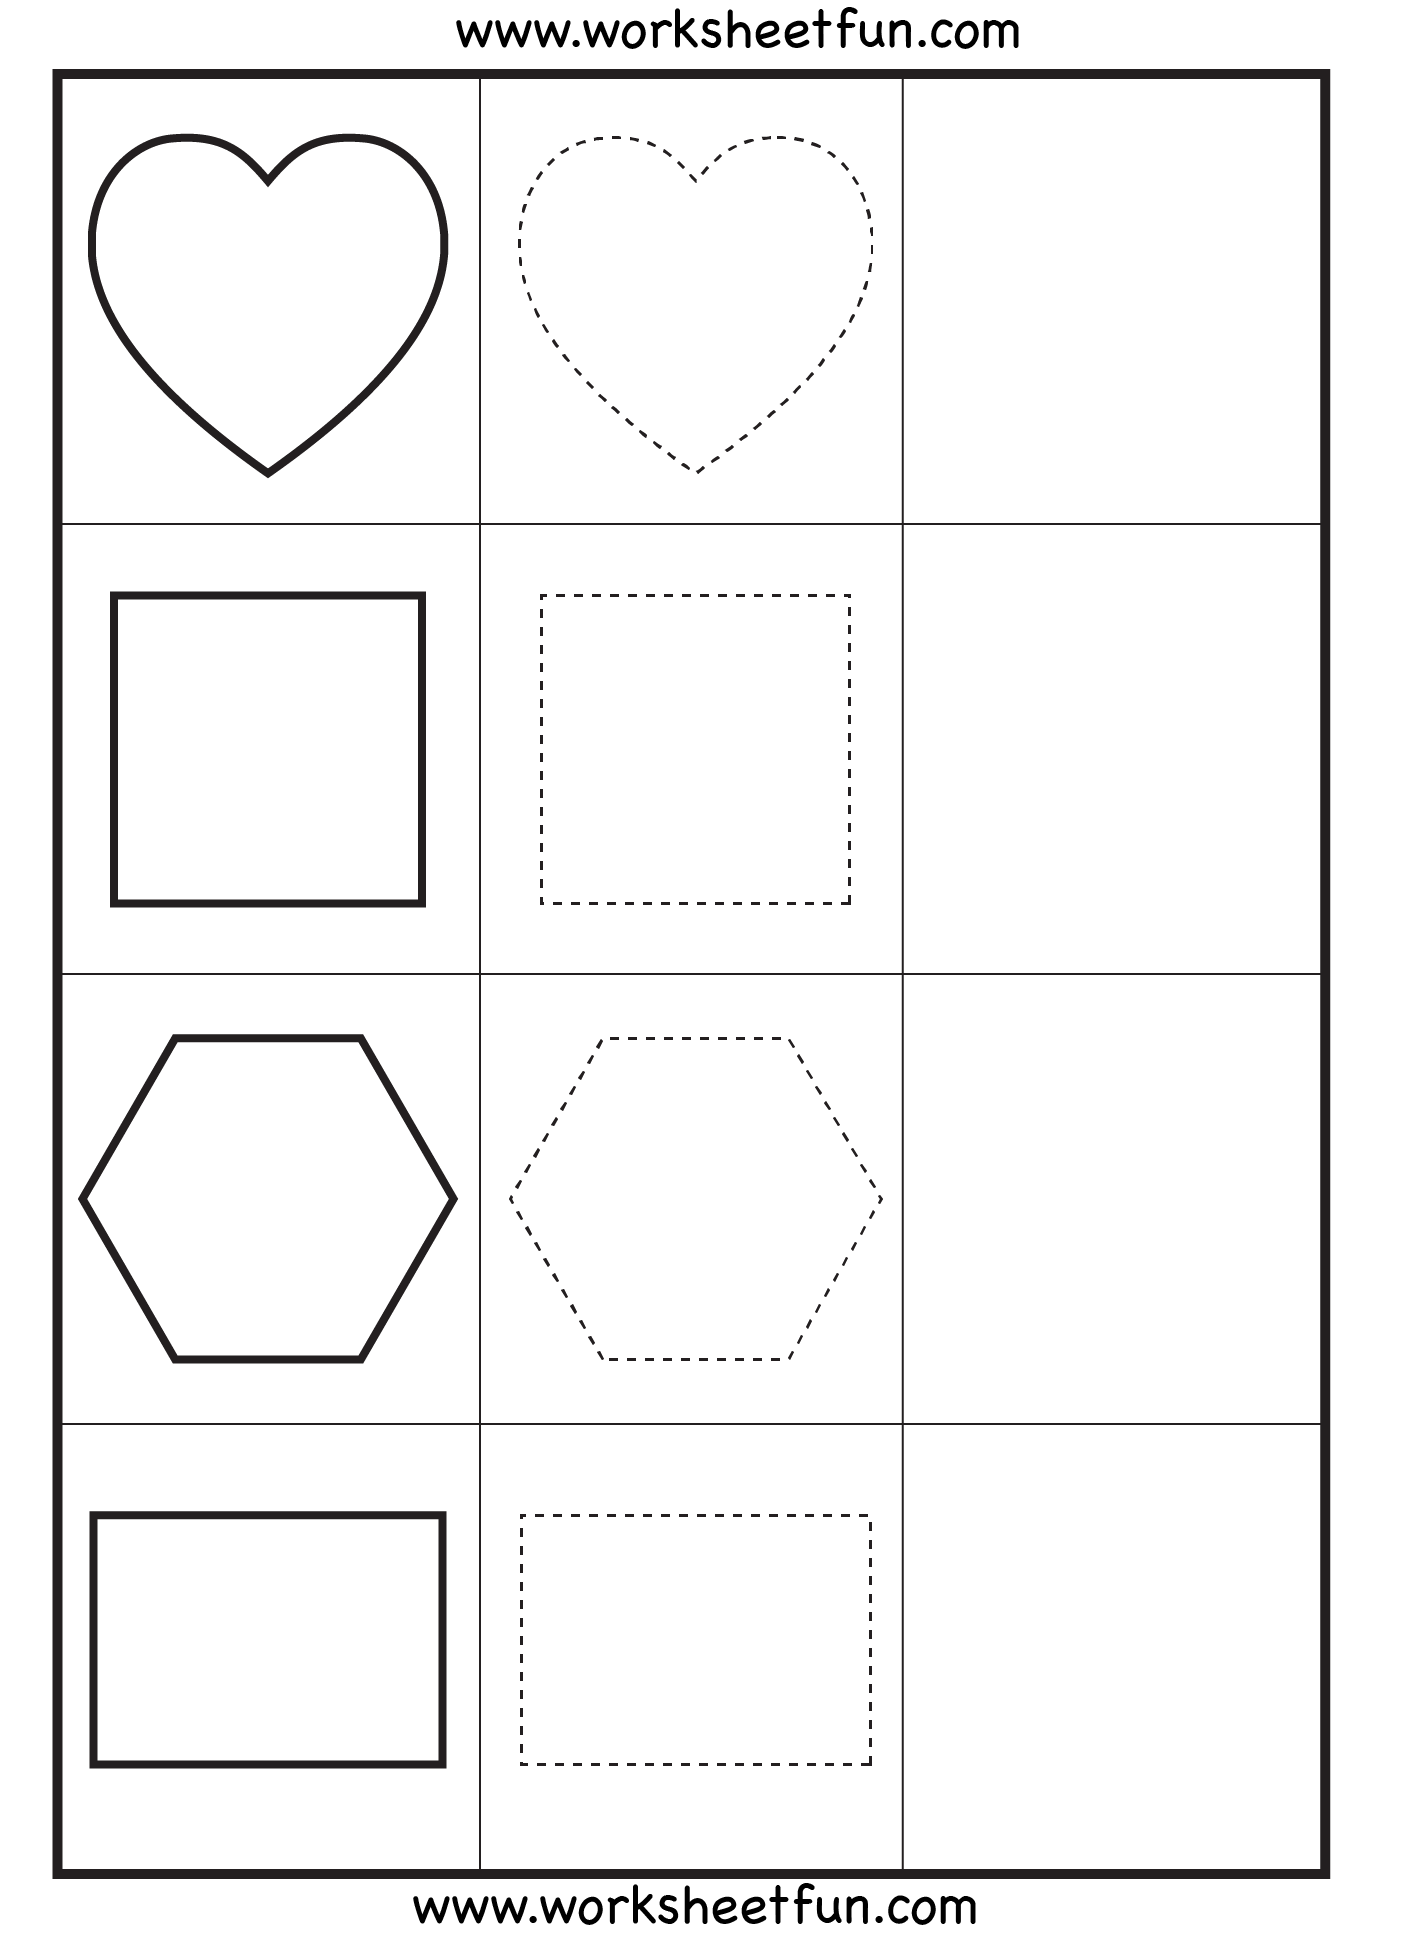 Shape Tracing 3 Worksheets Free Printable Worksheets